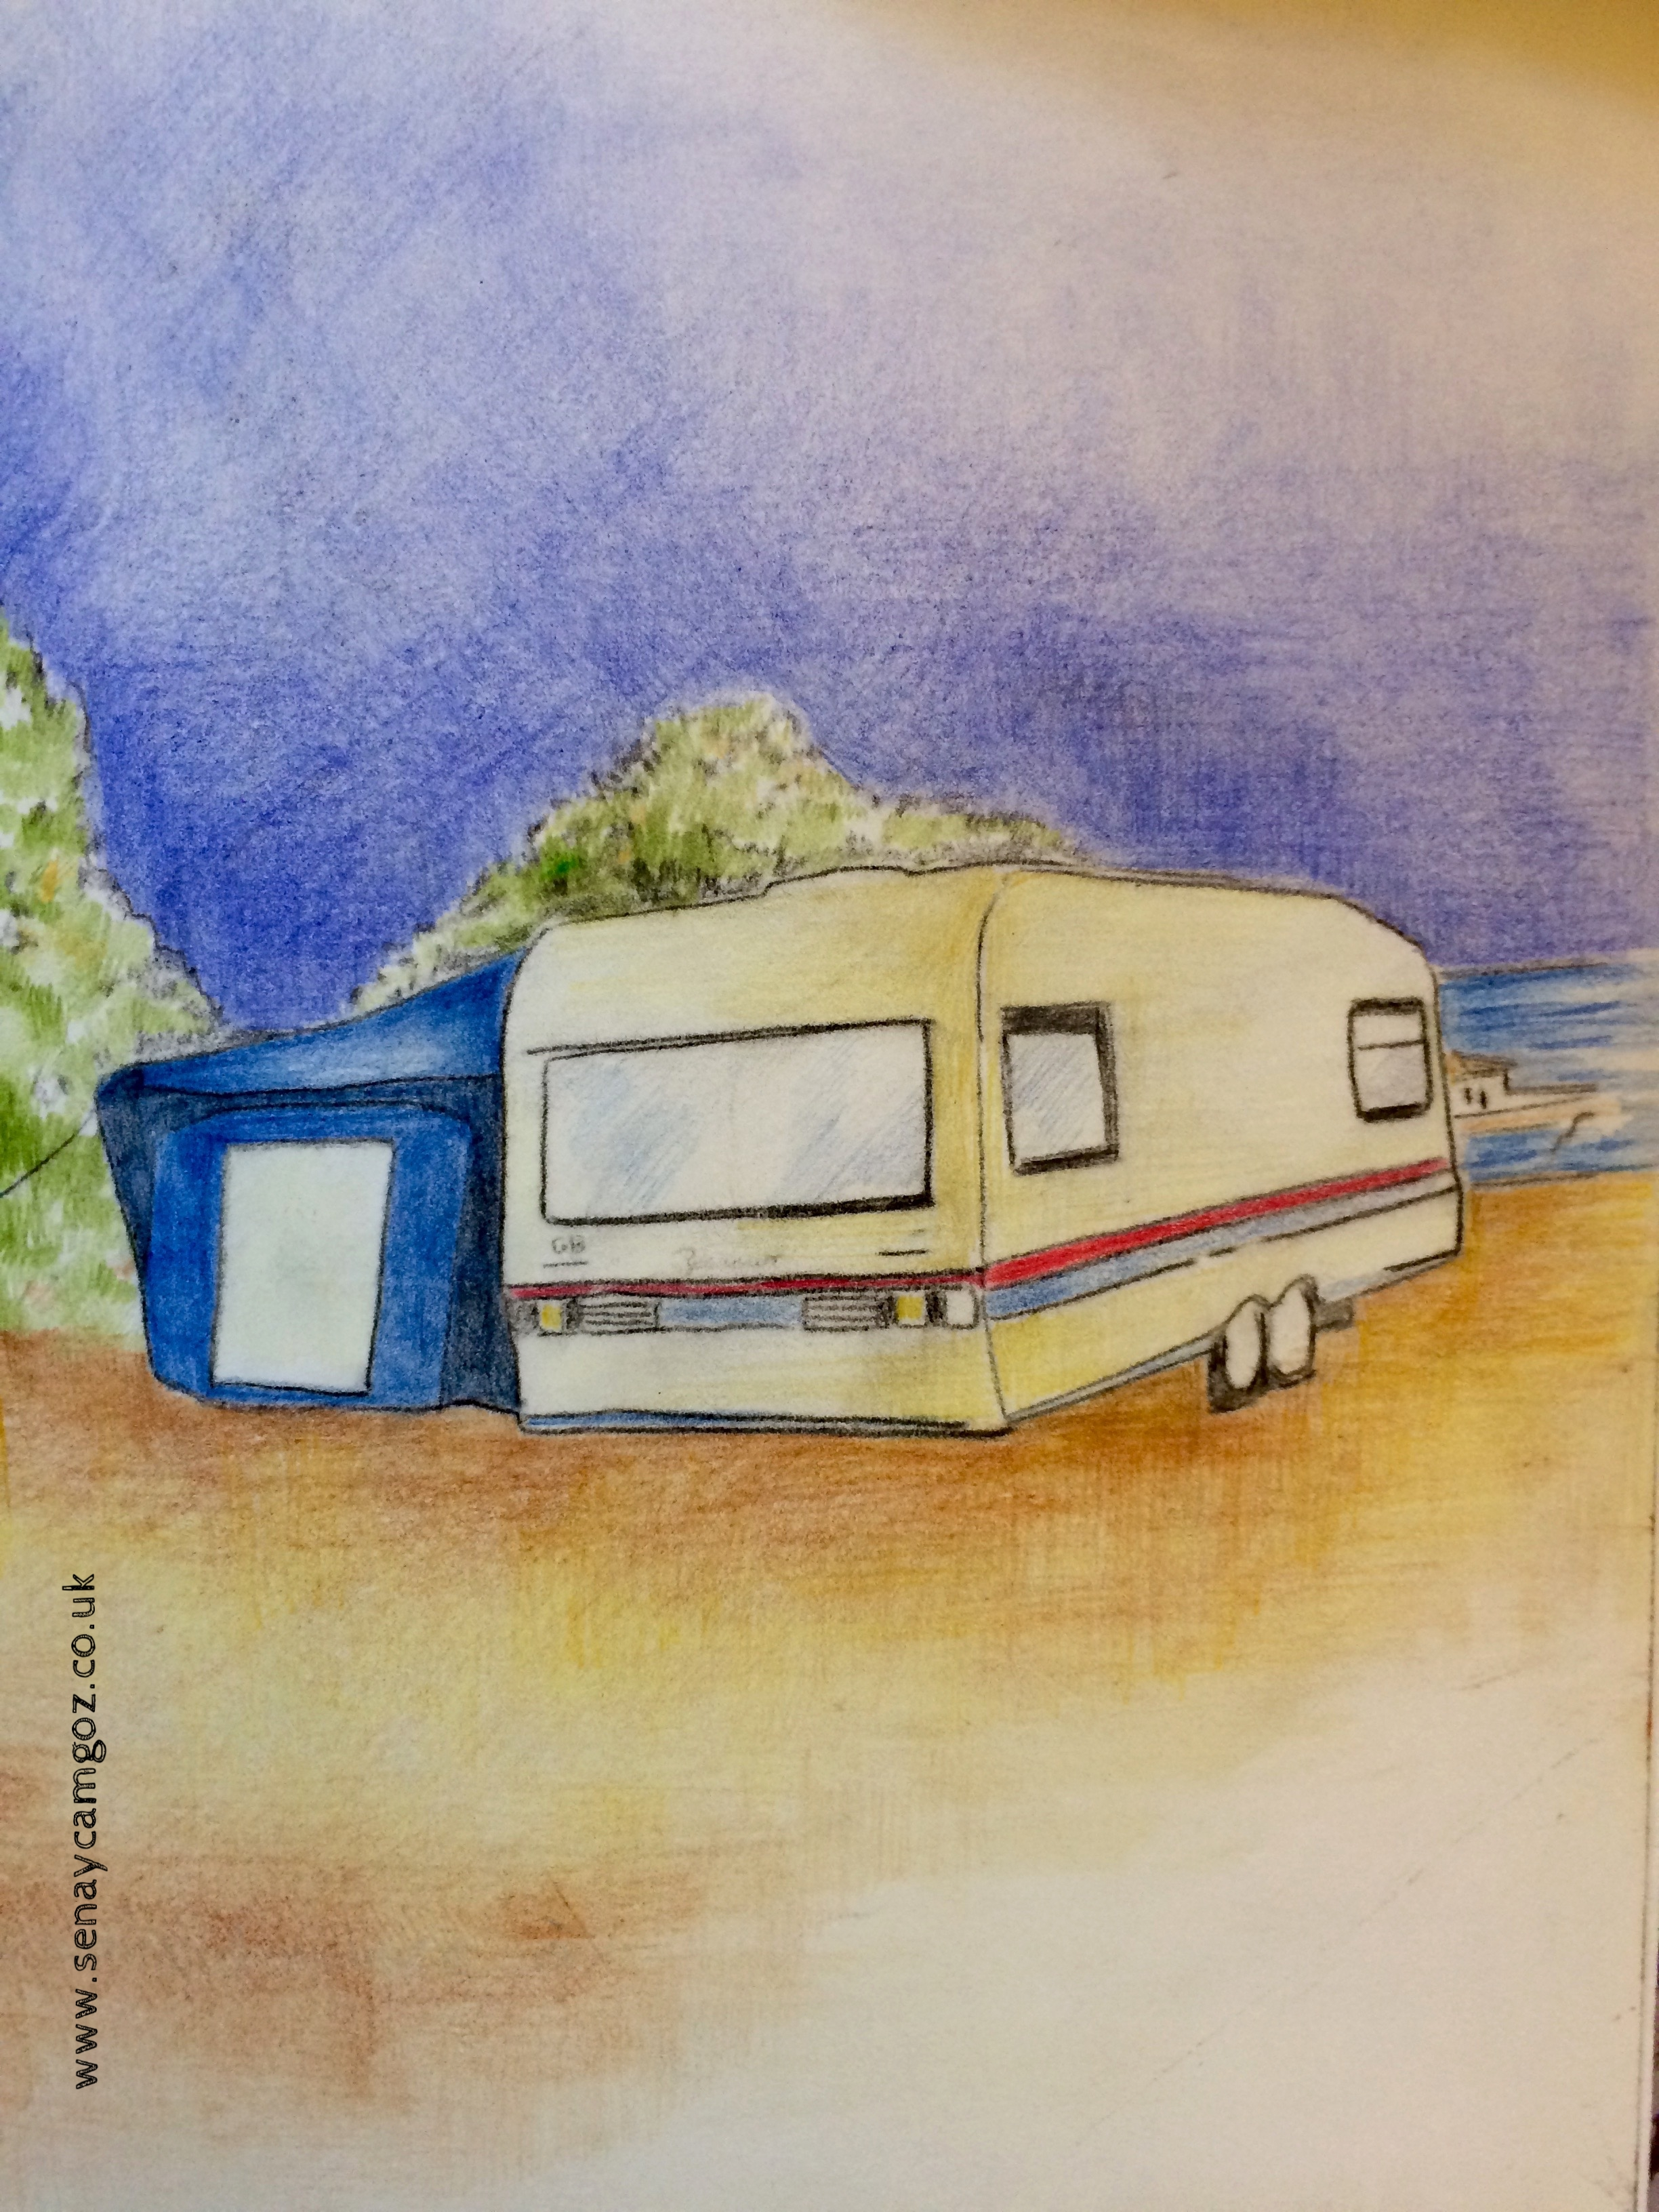 - CaravanPolychromo pencils on paper